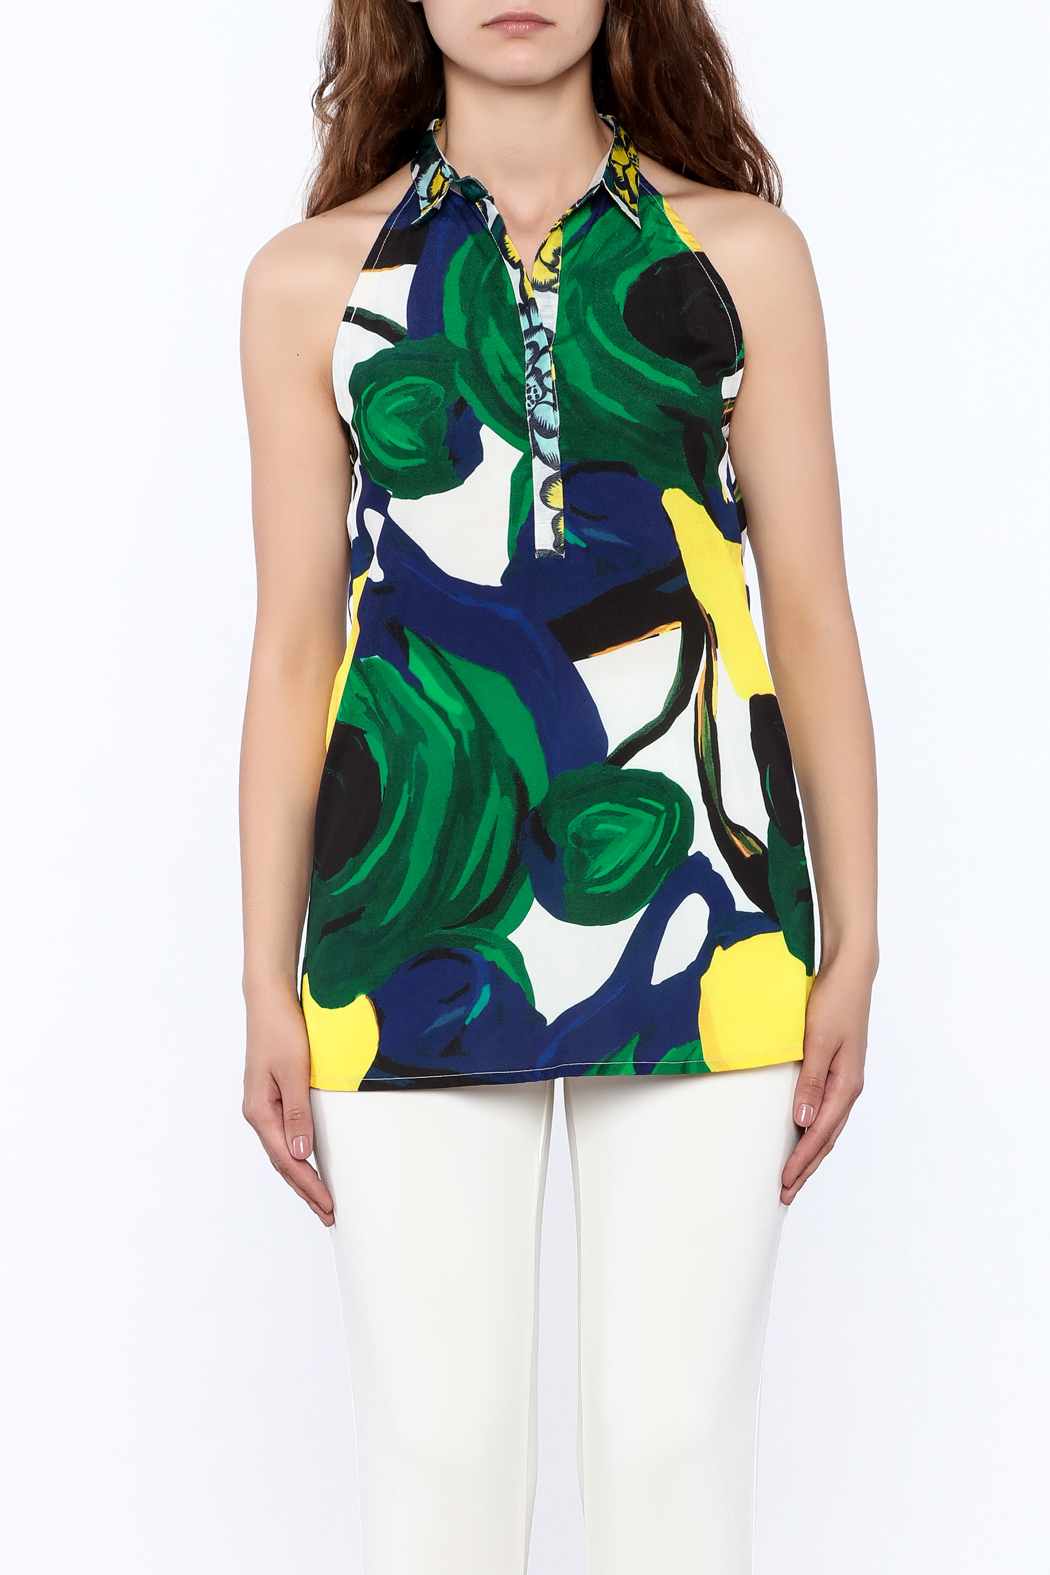 KAS New York Amelia Abstract Print Top - Side Cropped Image